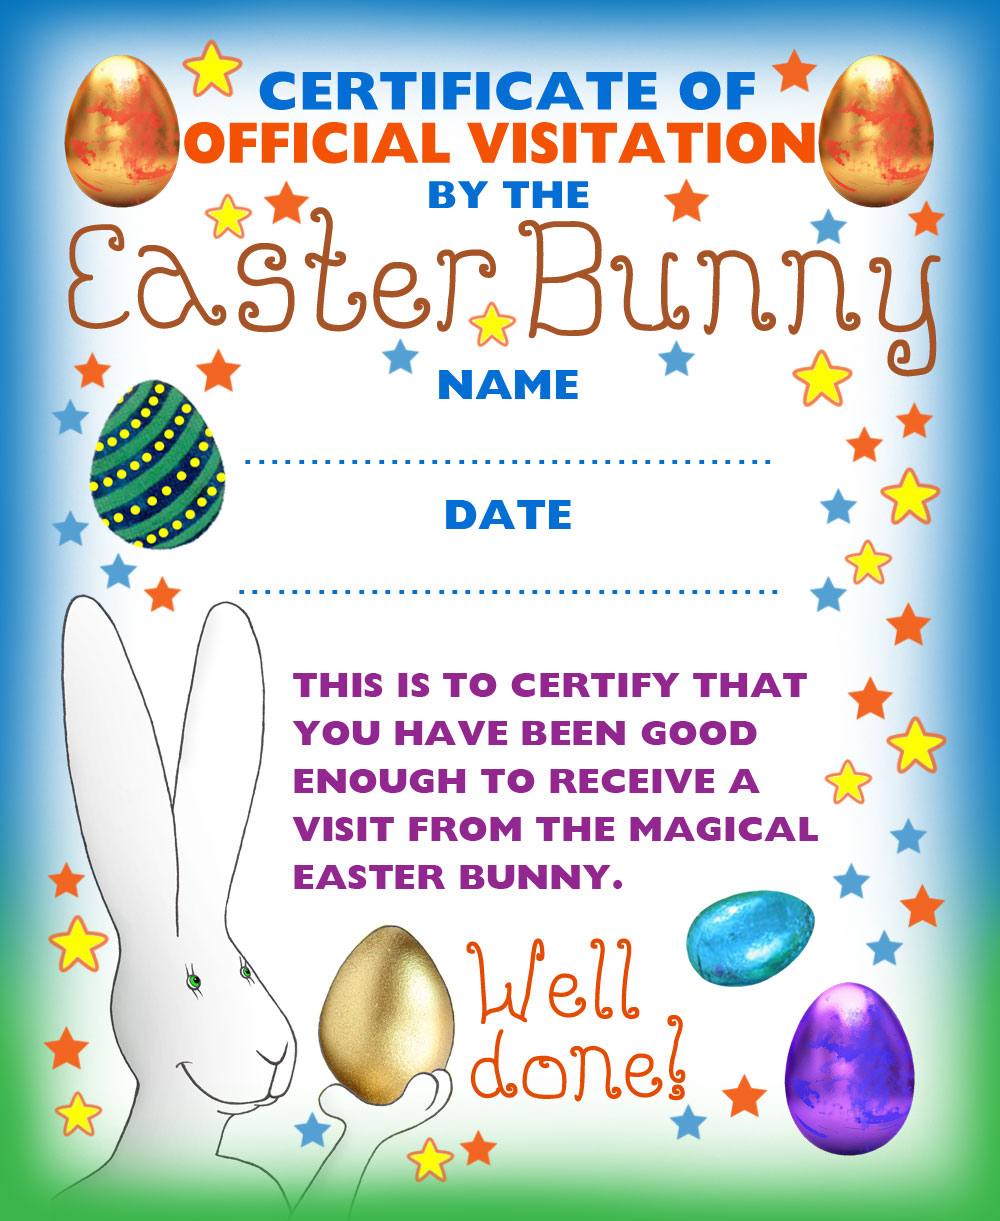 A certificate to assert that you've been good enough for a visit from the Easter Bunny